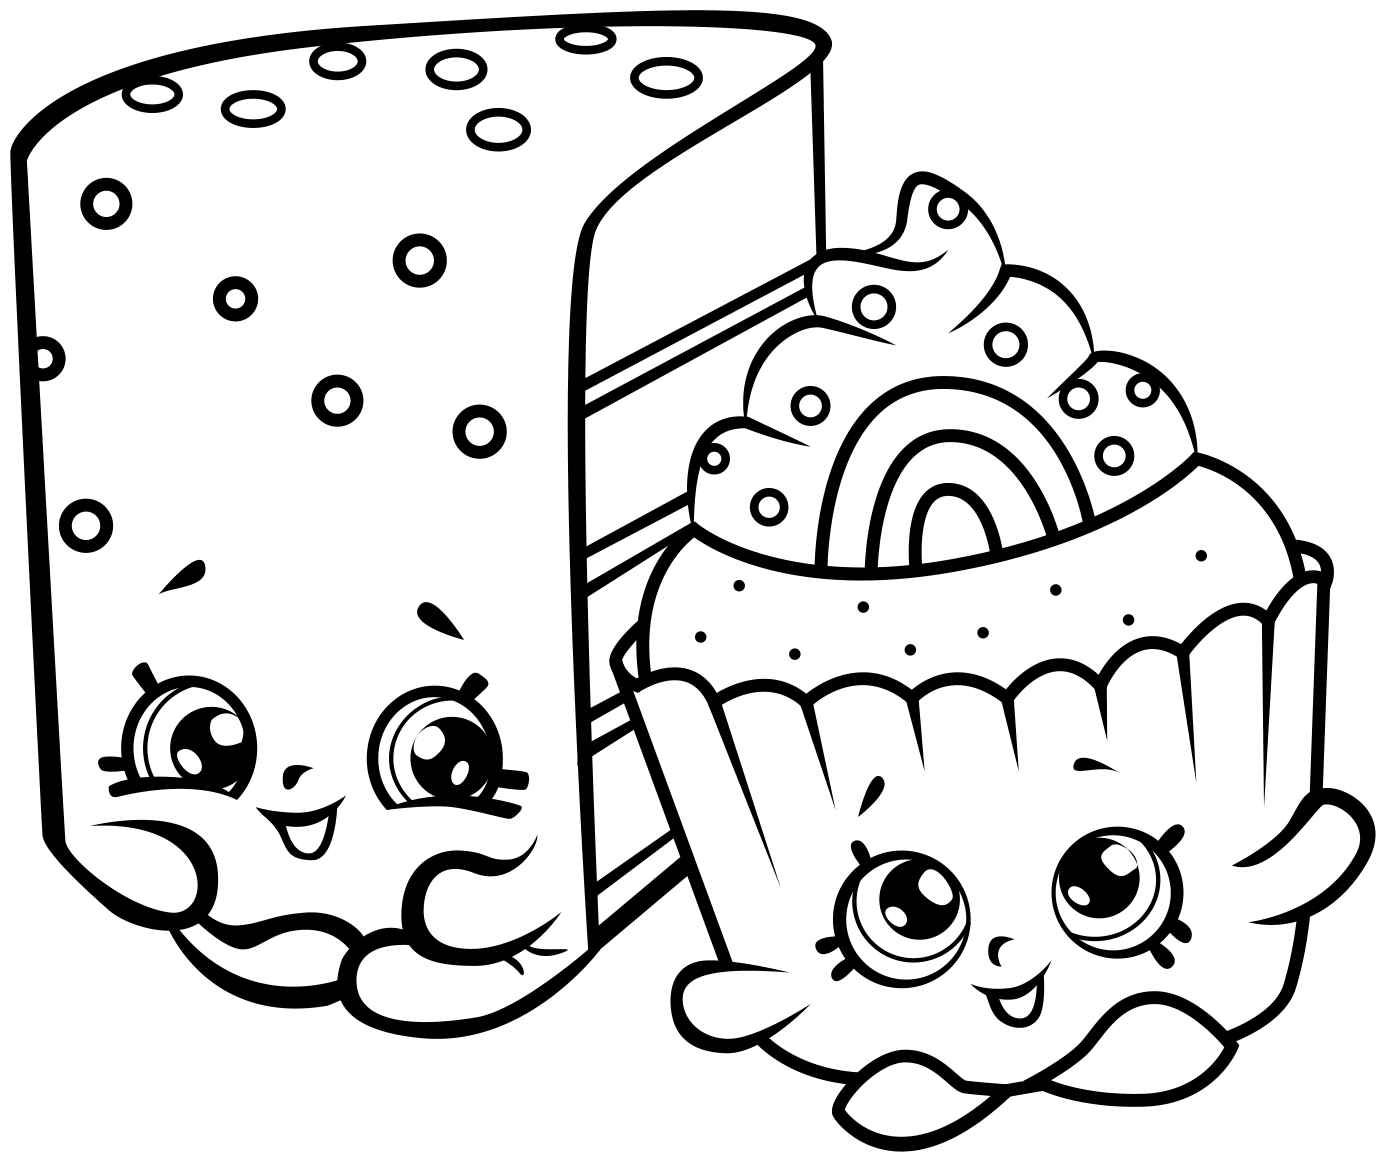 Shopkins Coloring Pages - Best Coloring Pages For Kids - Free Printable Coloring Pages